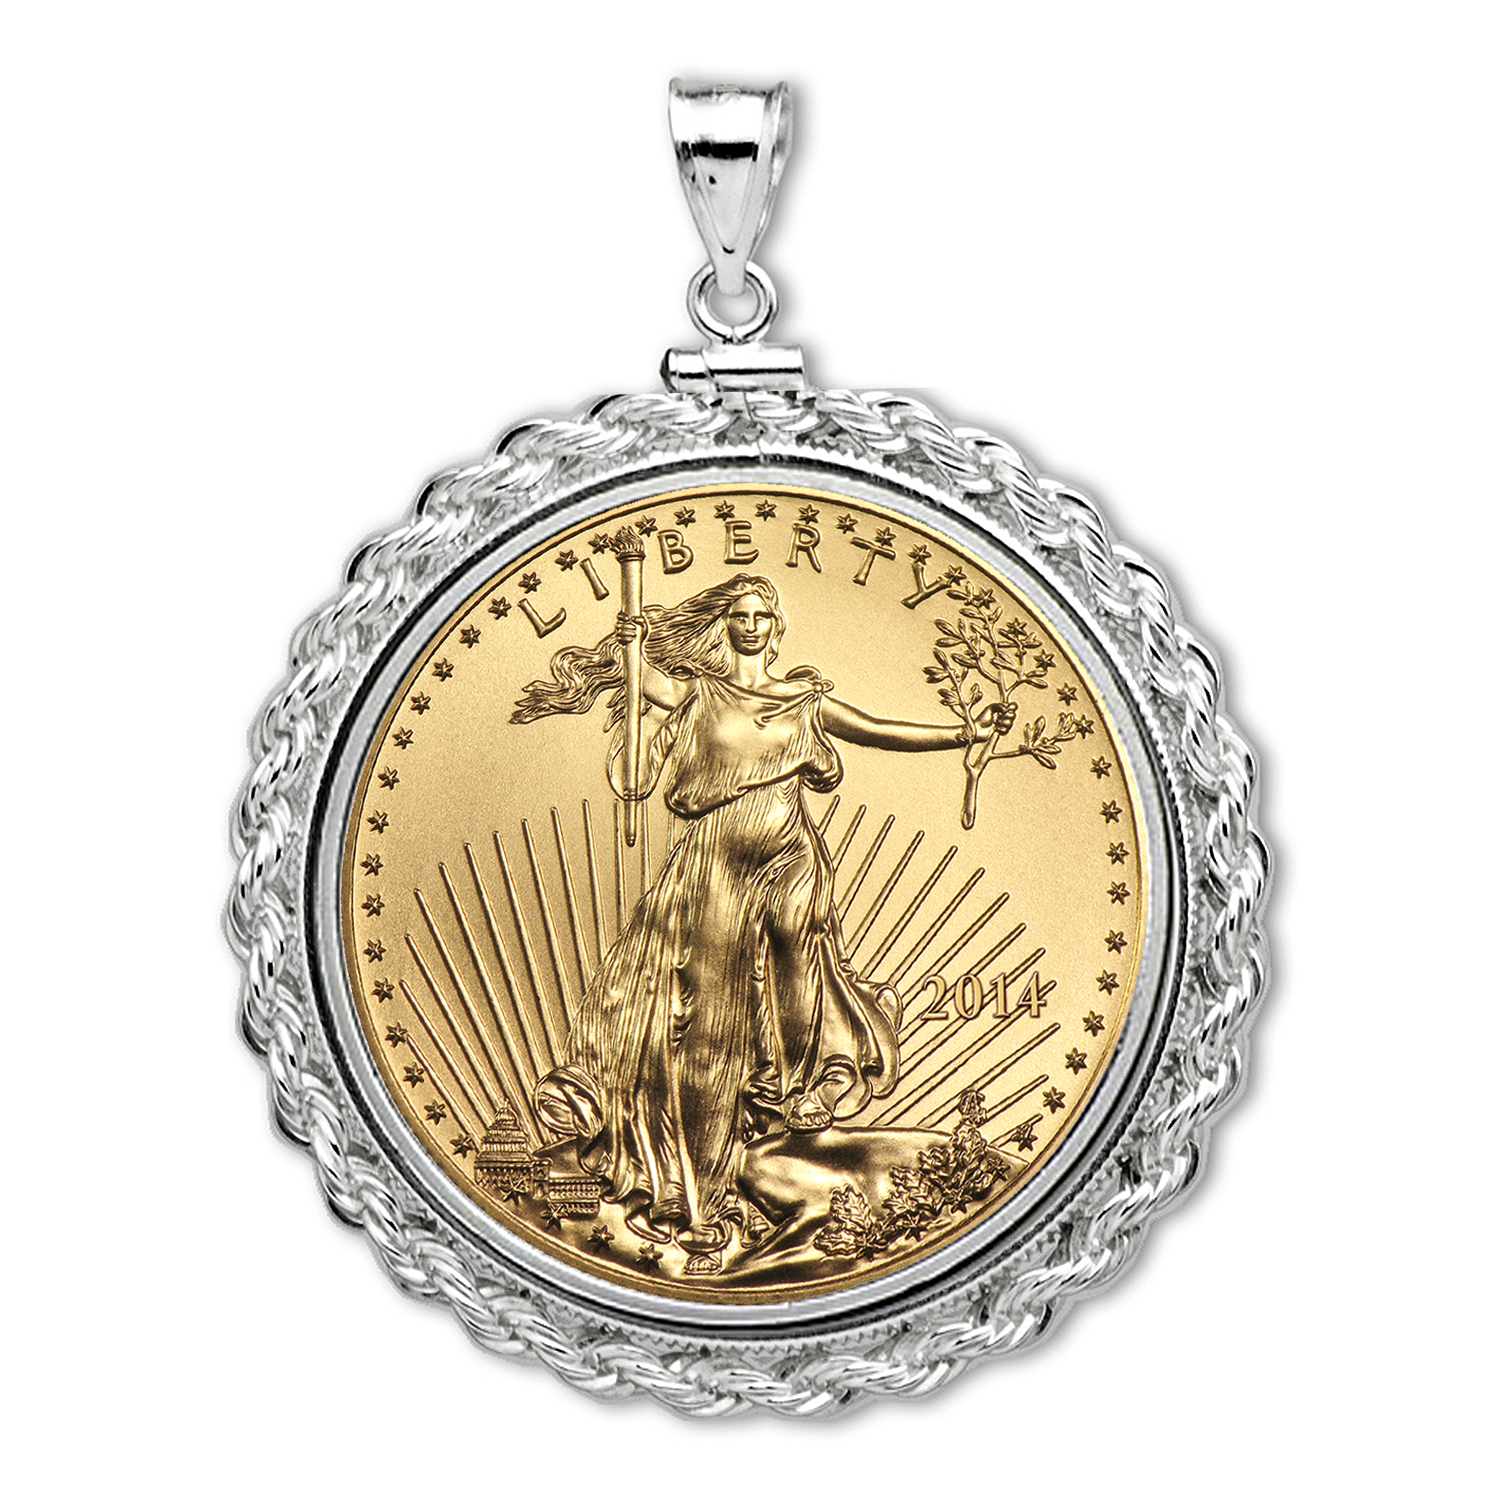 2014 1 oz Gold Eagle White Gold Pendant (Rope-ScrewTop Bezel)